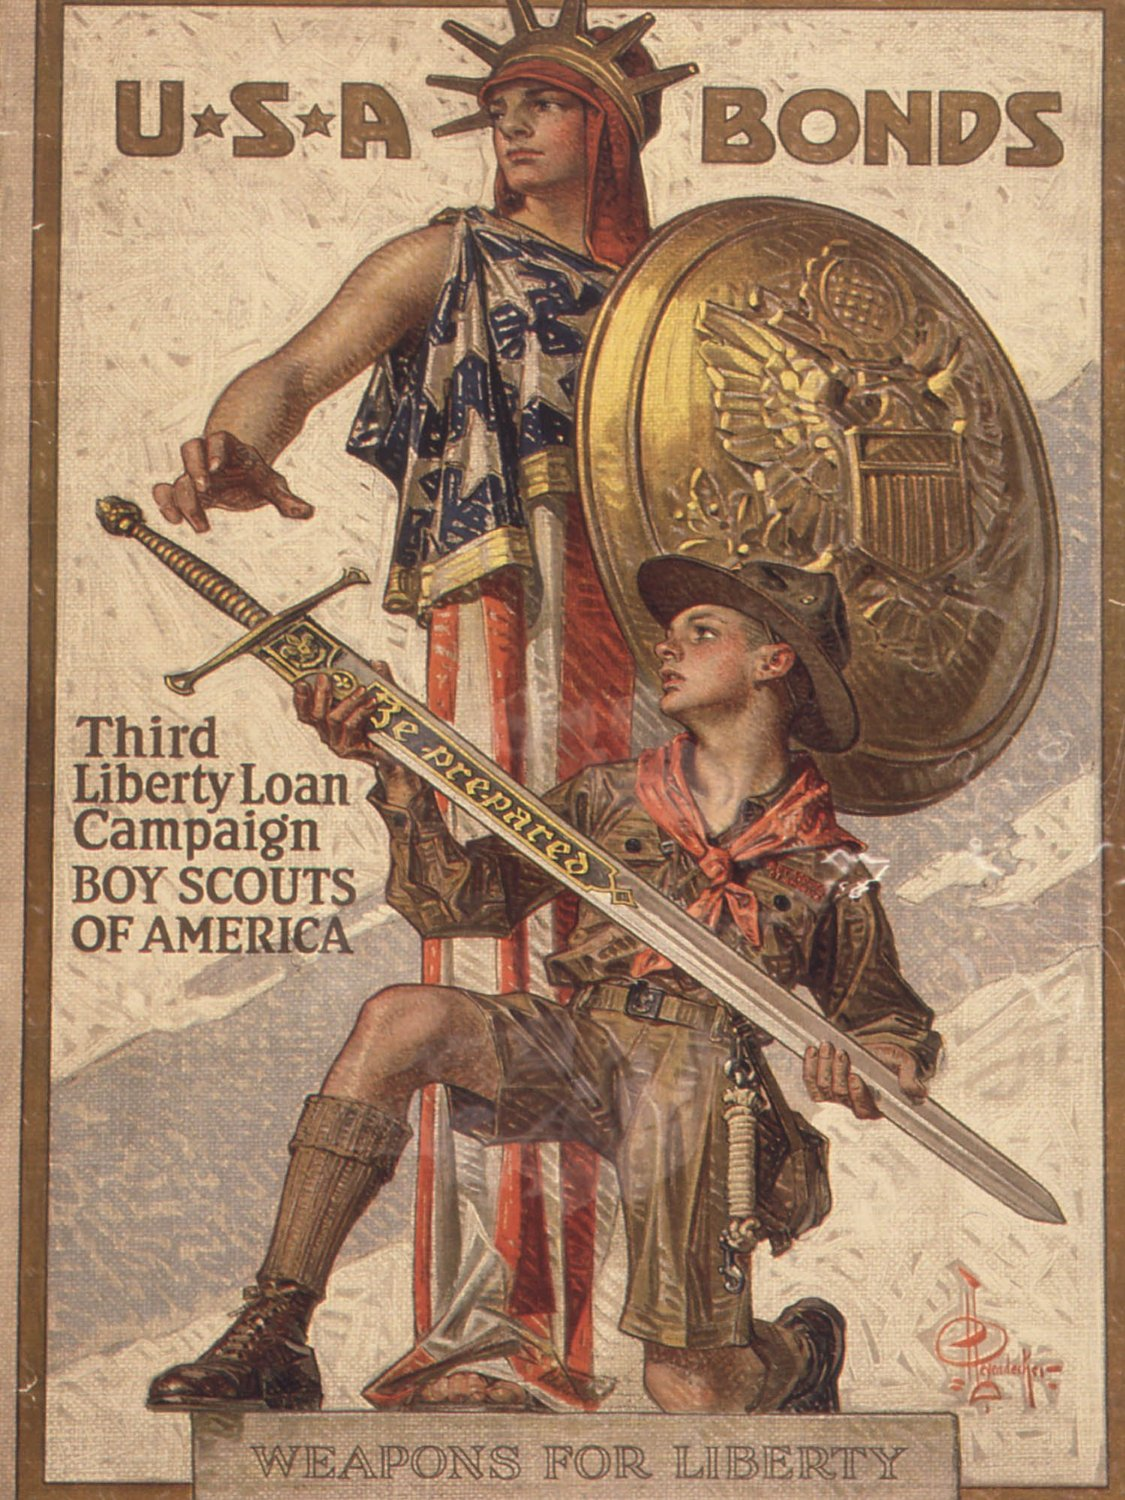 3dRose CST/_149392/_1 Vintage USA Bonds Third Liberty Loan Campaign Boy Scouts of America Soft Coasters Set of 4